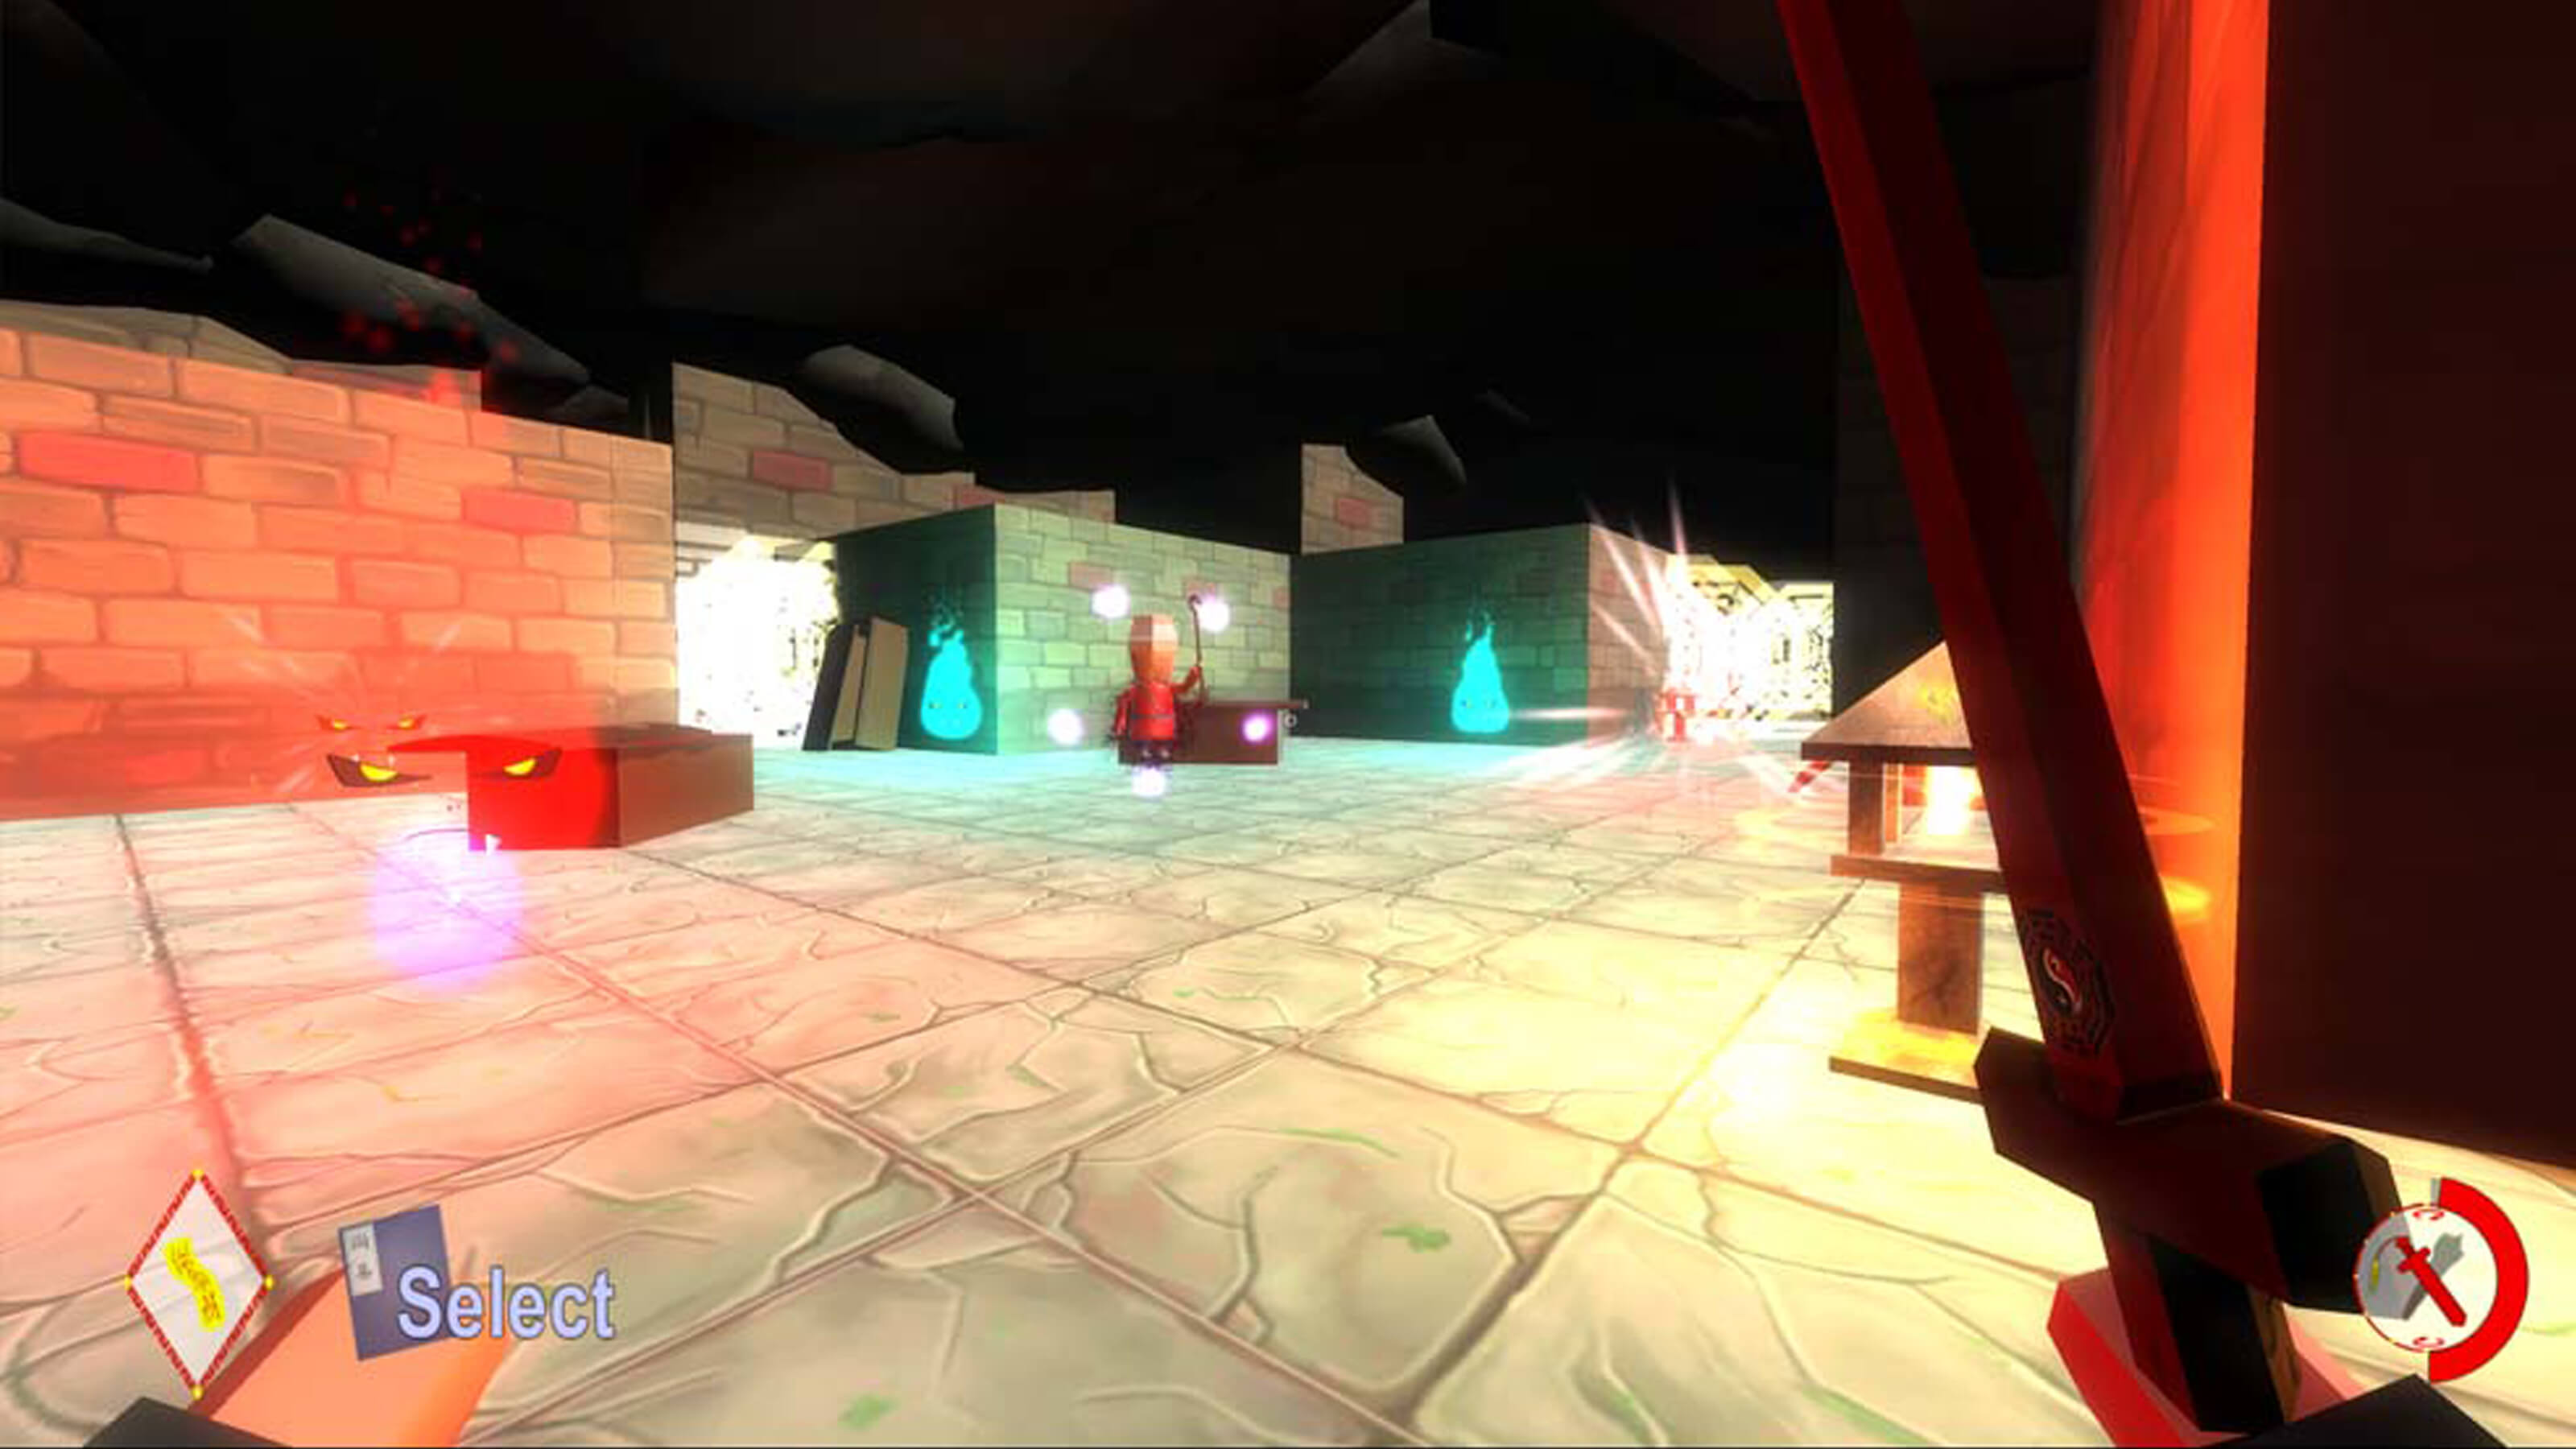 In first-person view, an enemy stands ahead surrounded by floating pink spheres and aqua flame balls